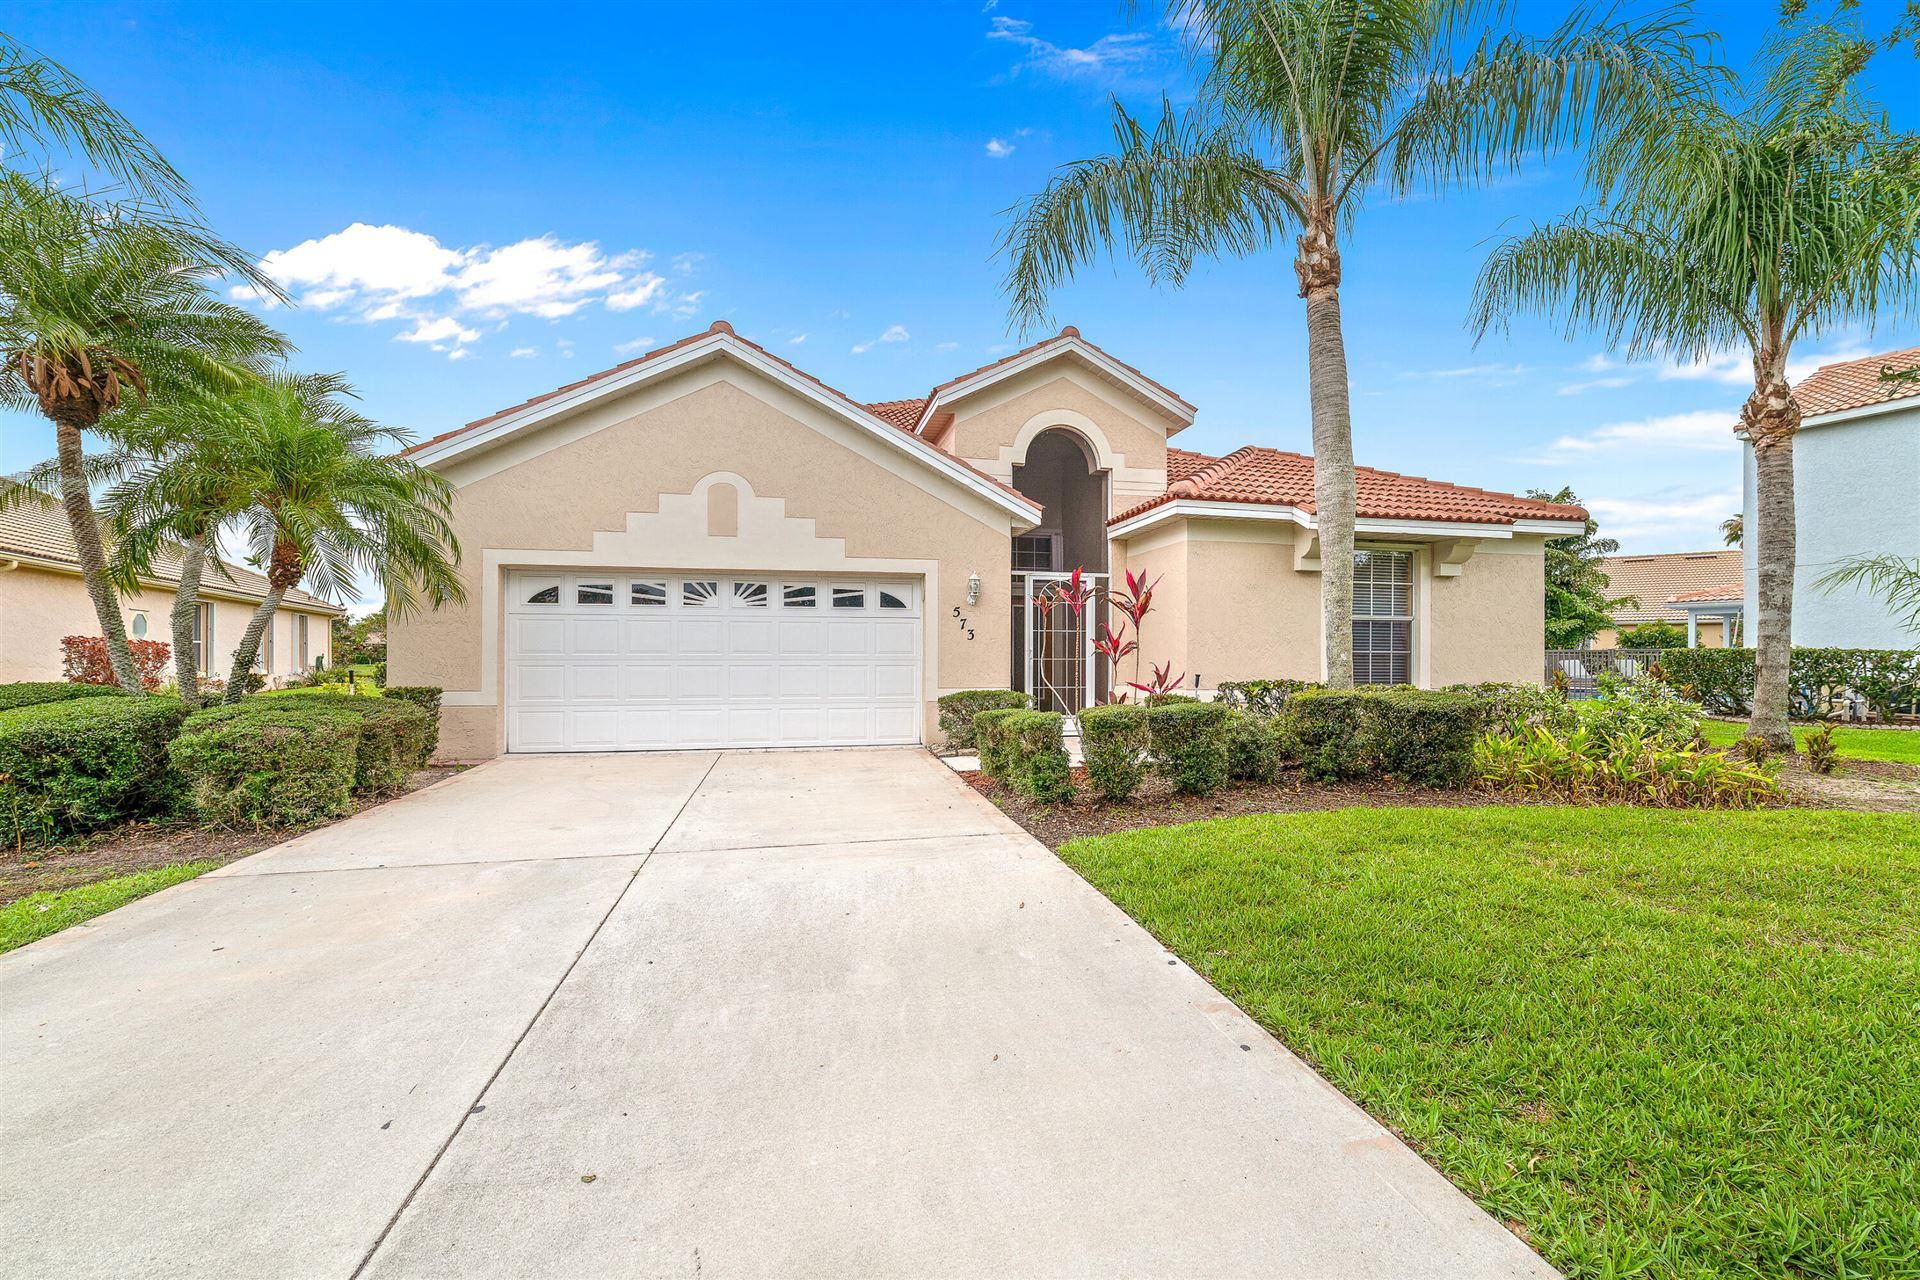 573 SW Spring Hill Point, Port Saint Lucie, FL 34986 - MLS#: RX-10716624